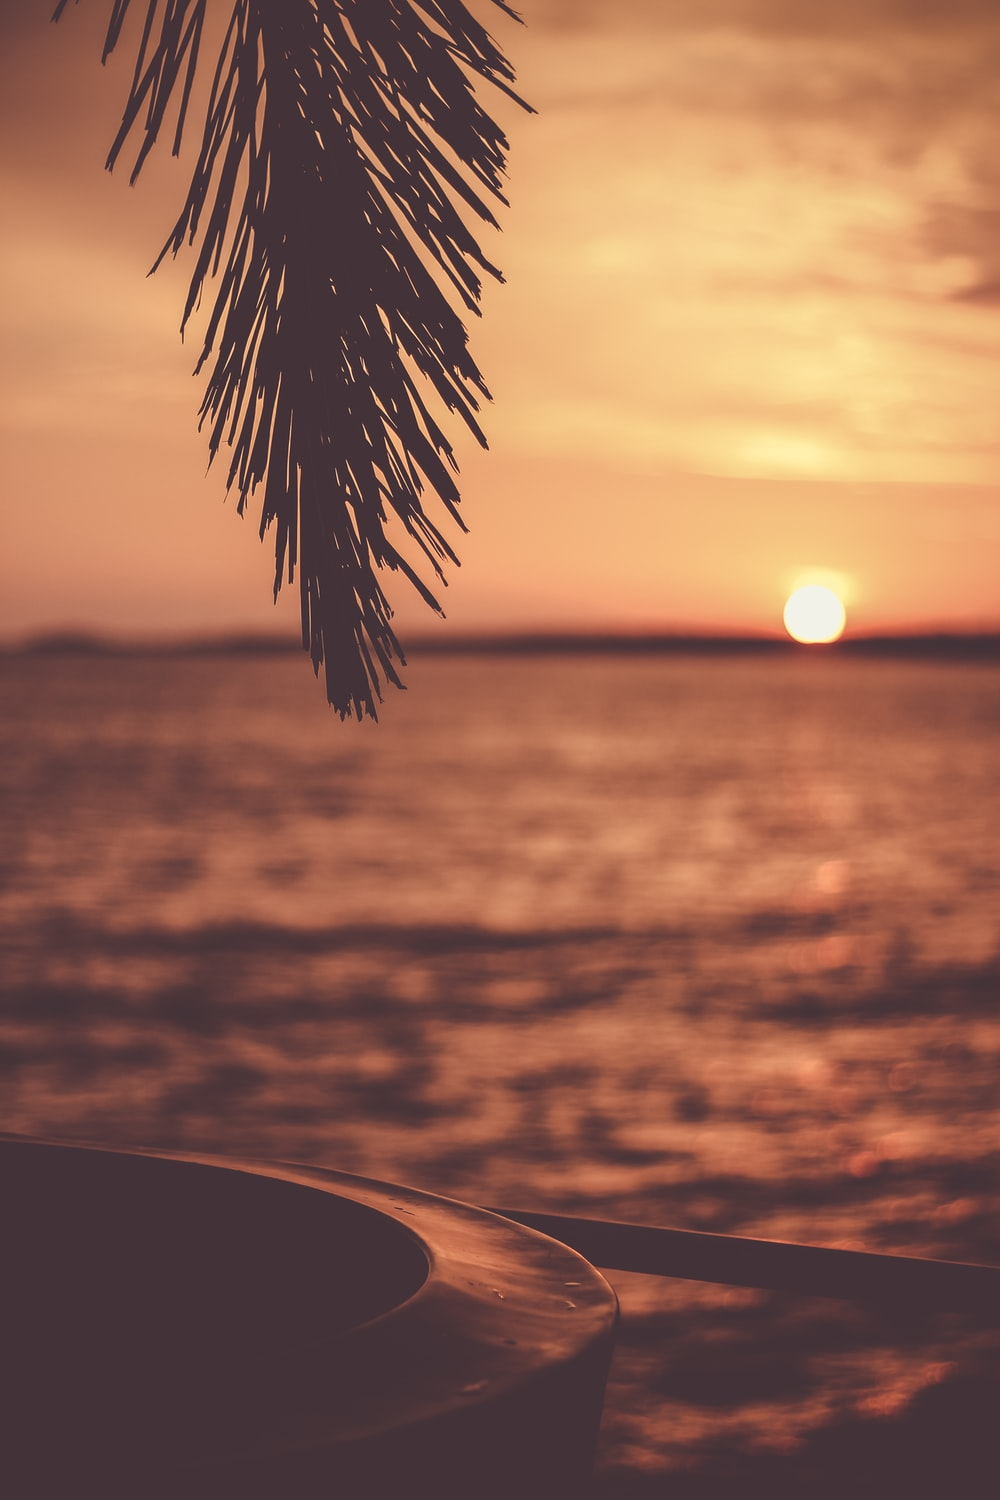 silhouette of tree with body of water background